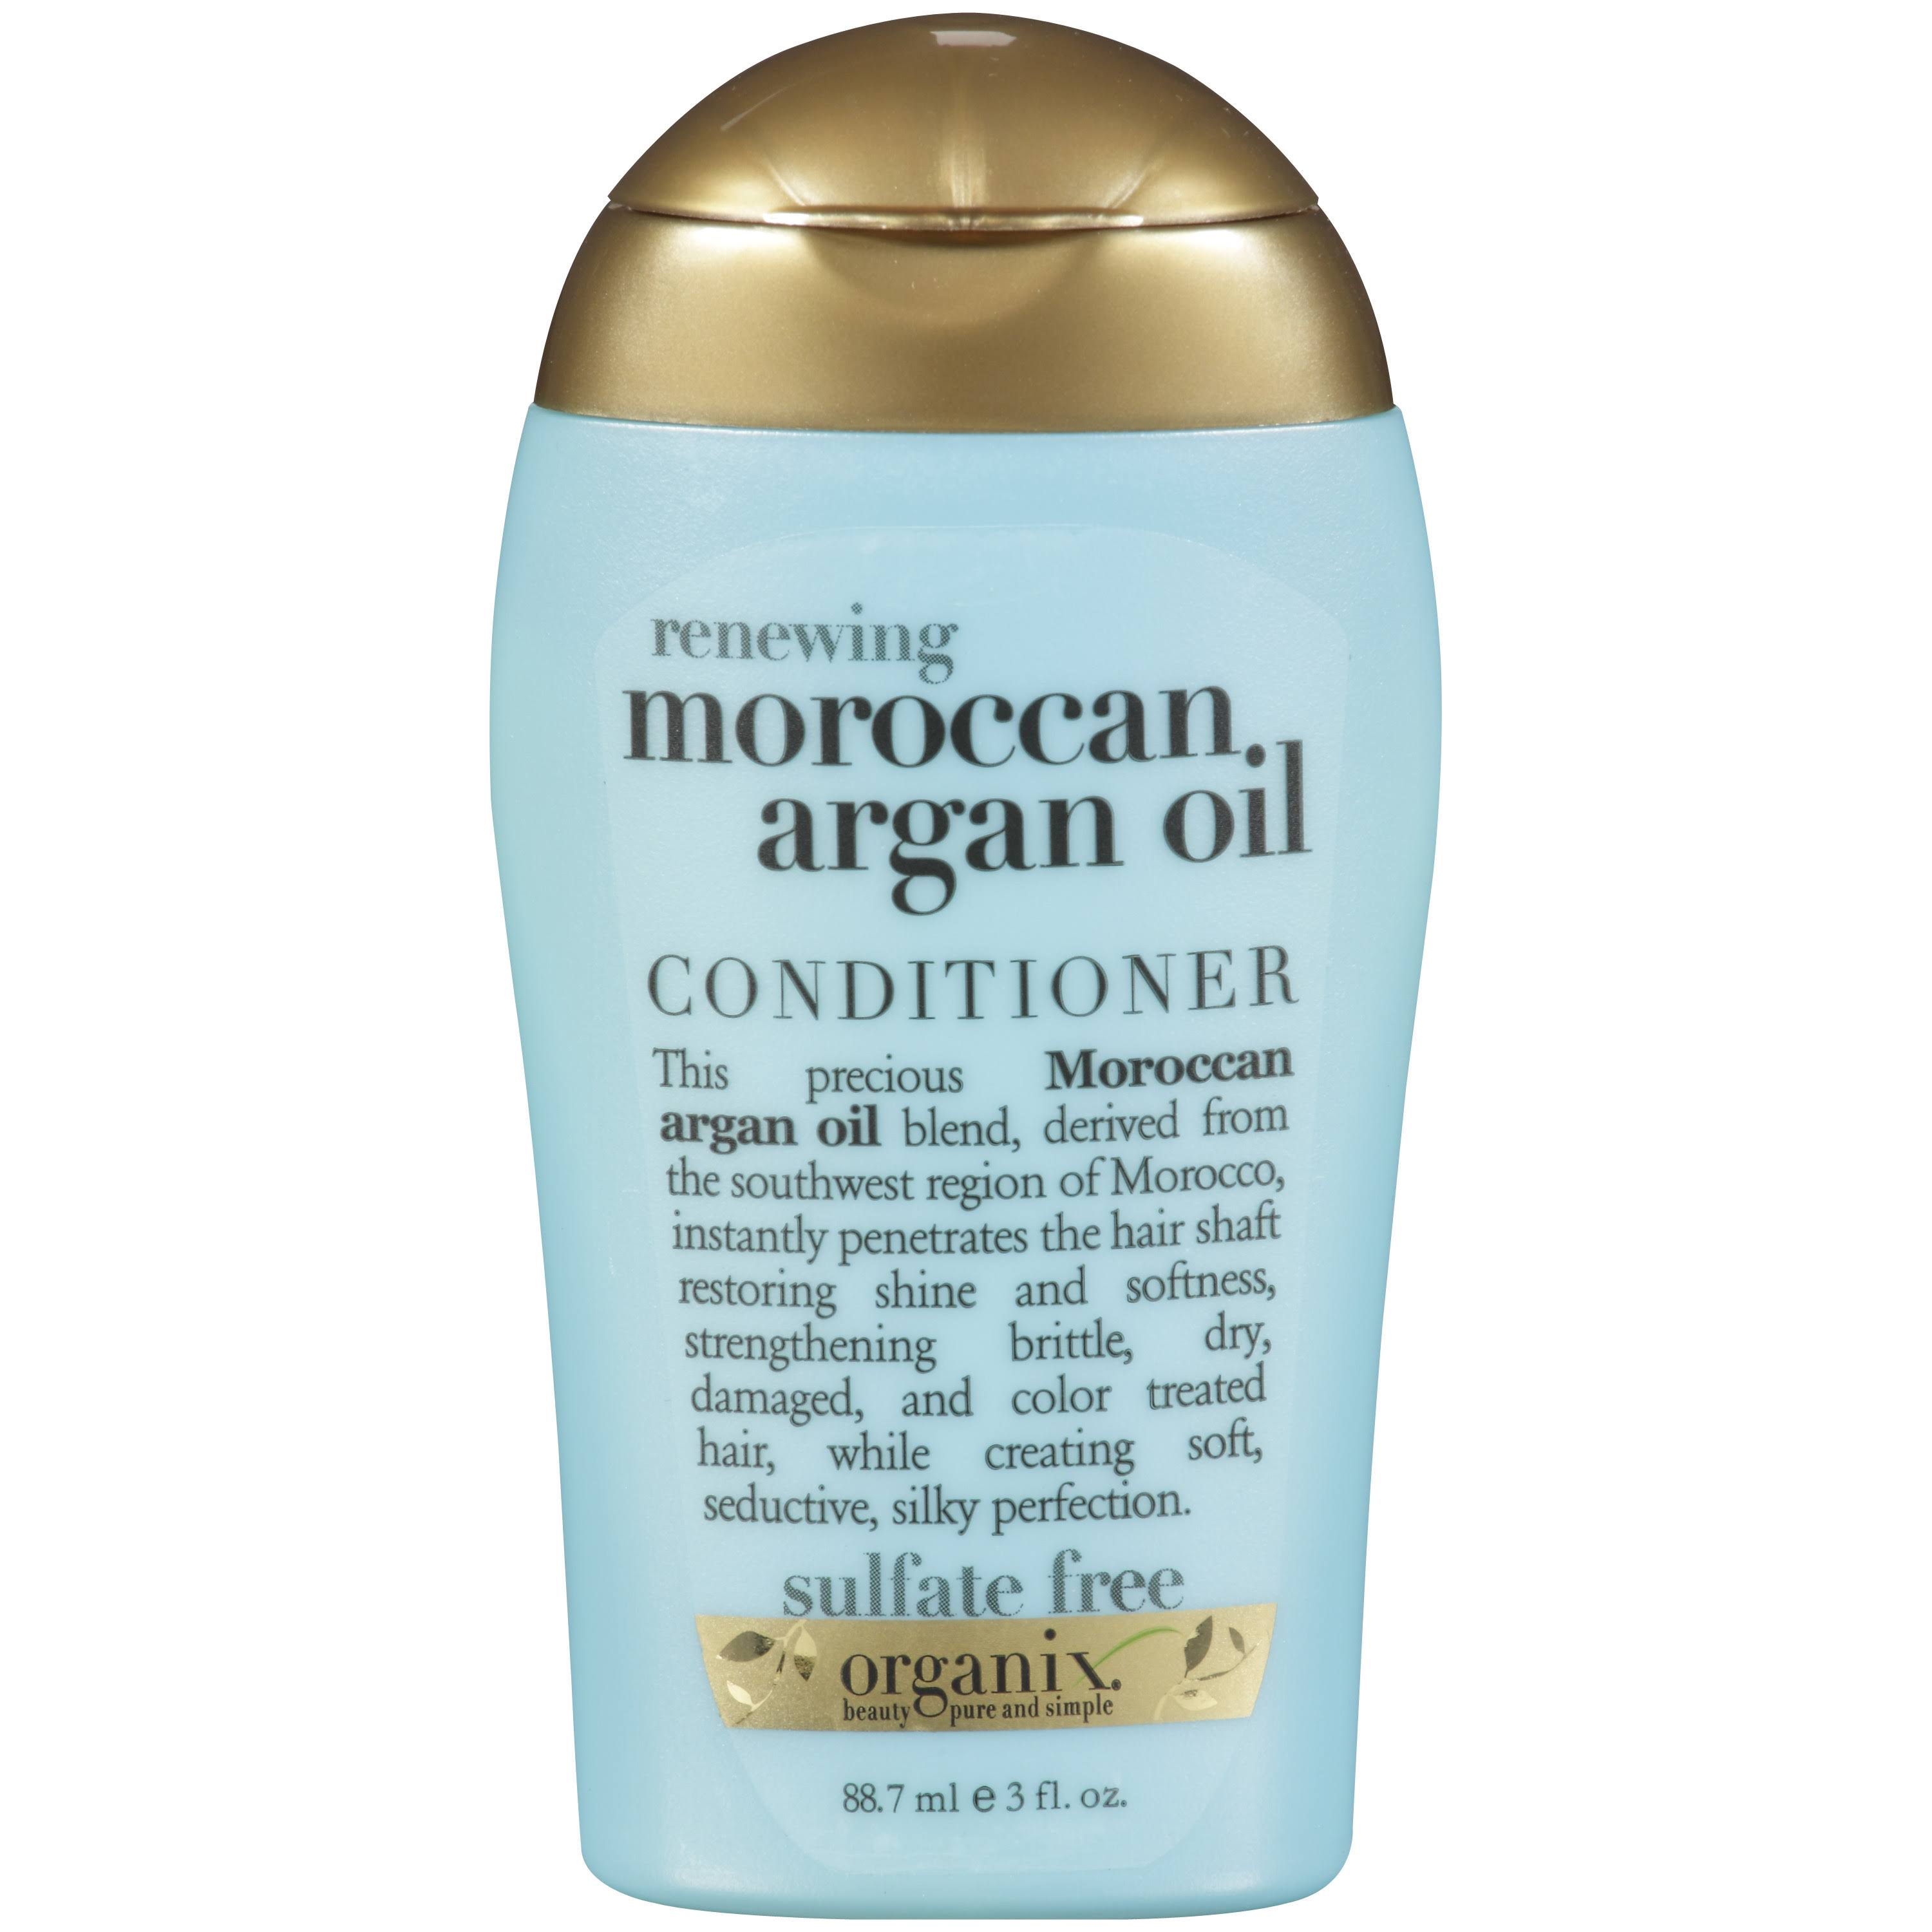 Ogx Organix Conditioner - 887ml, Moroccan Argan Oil